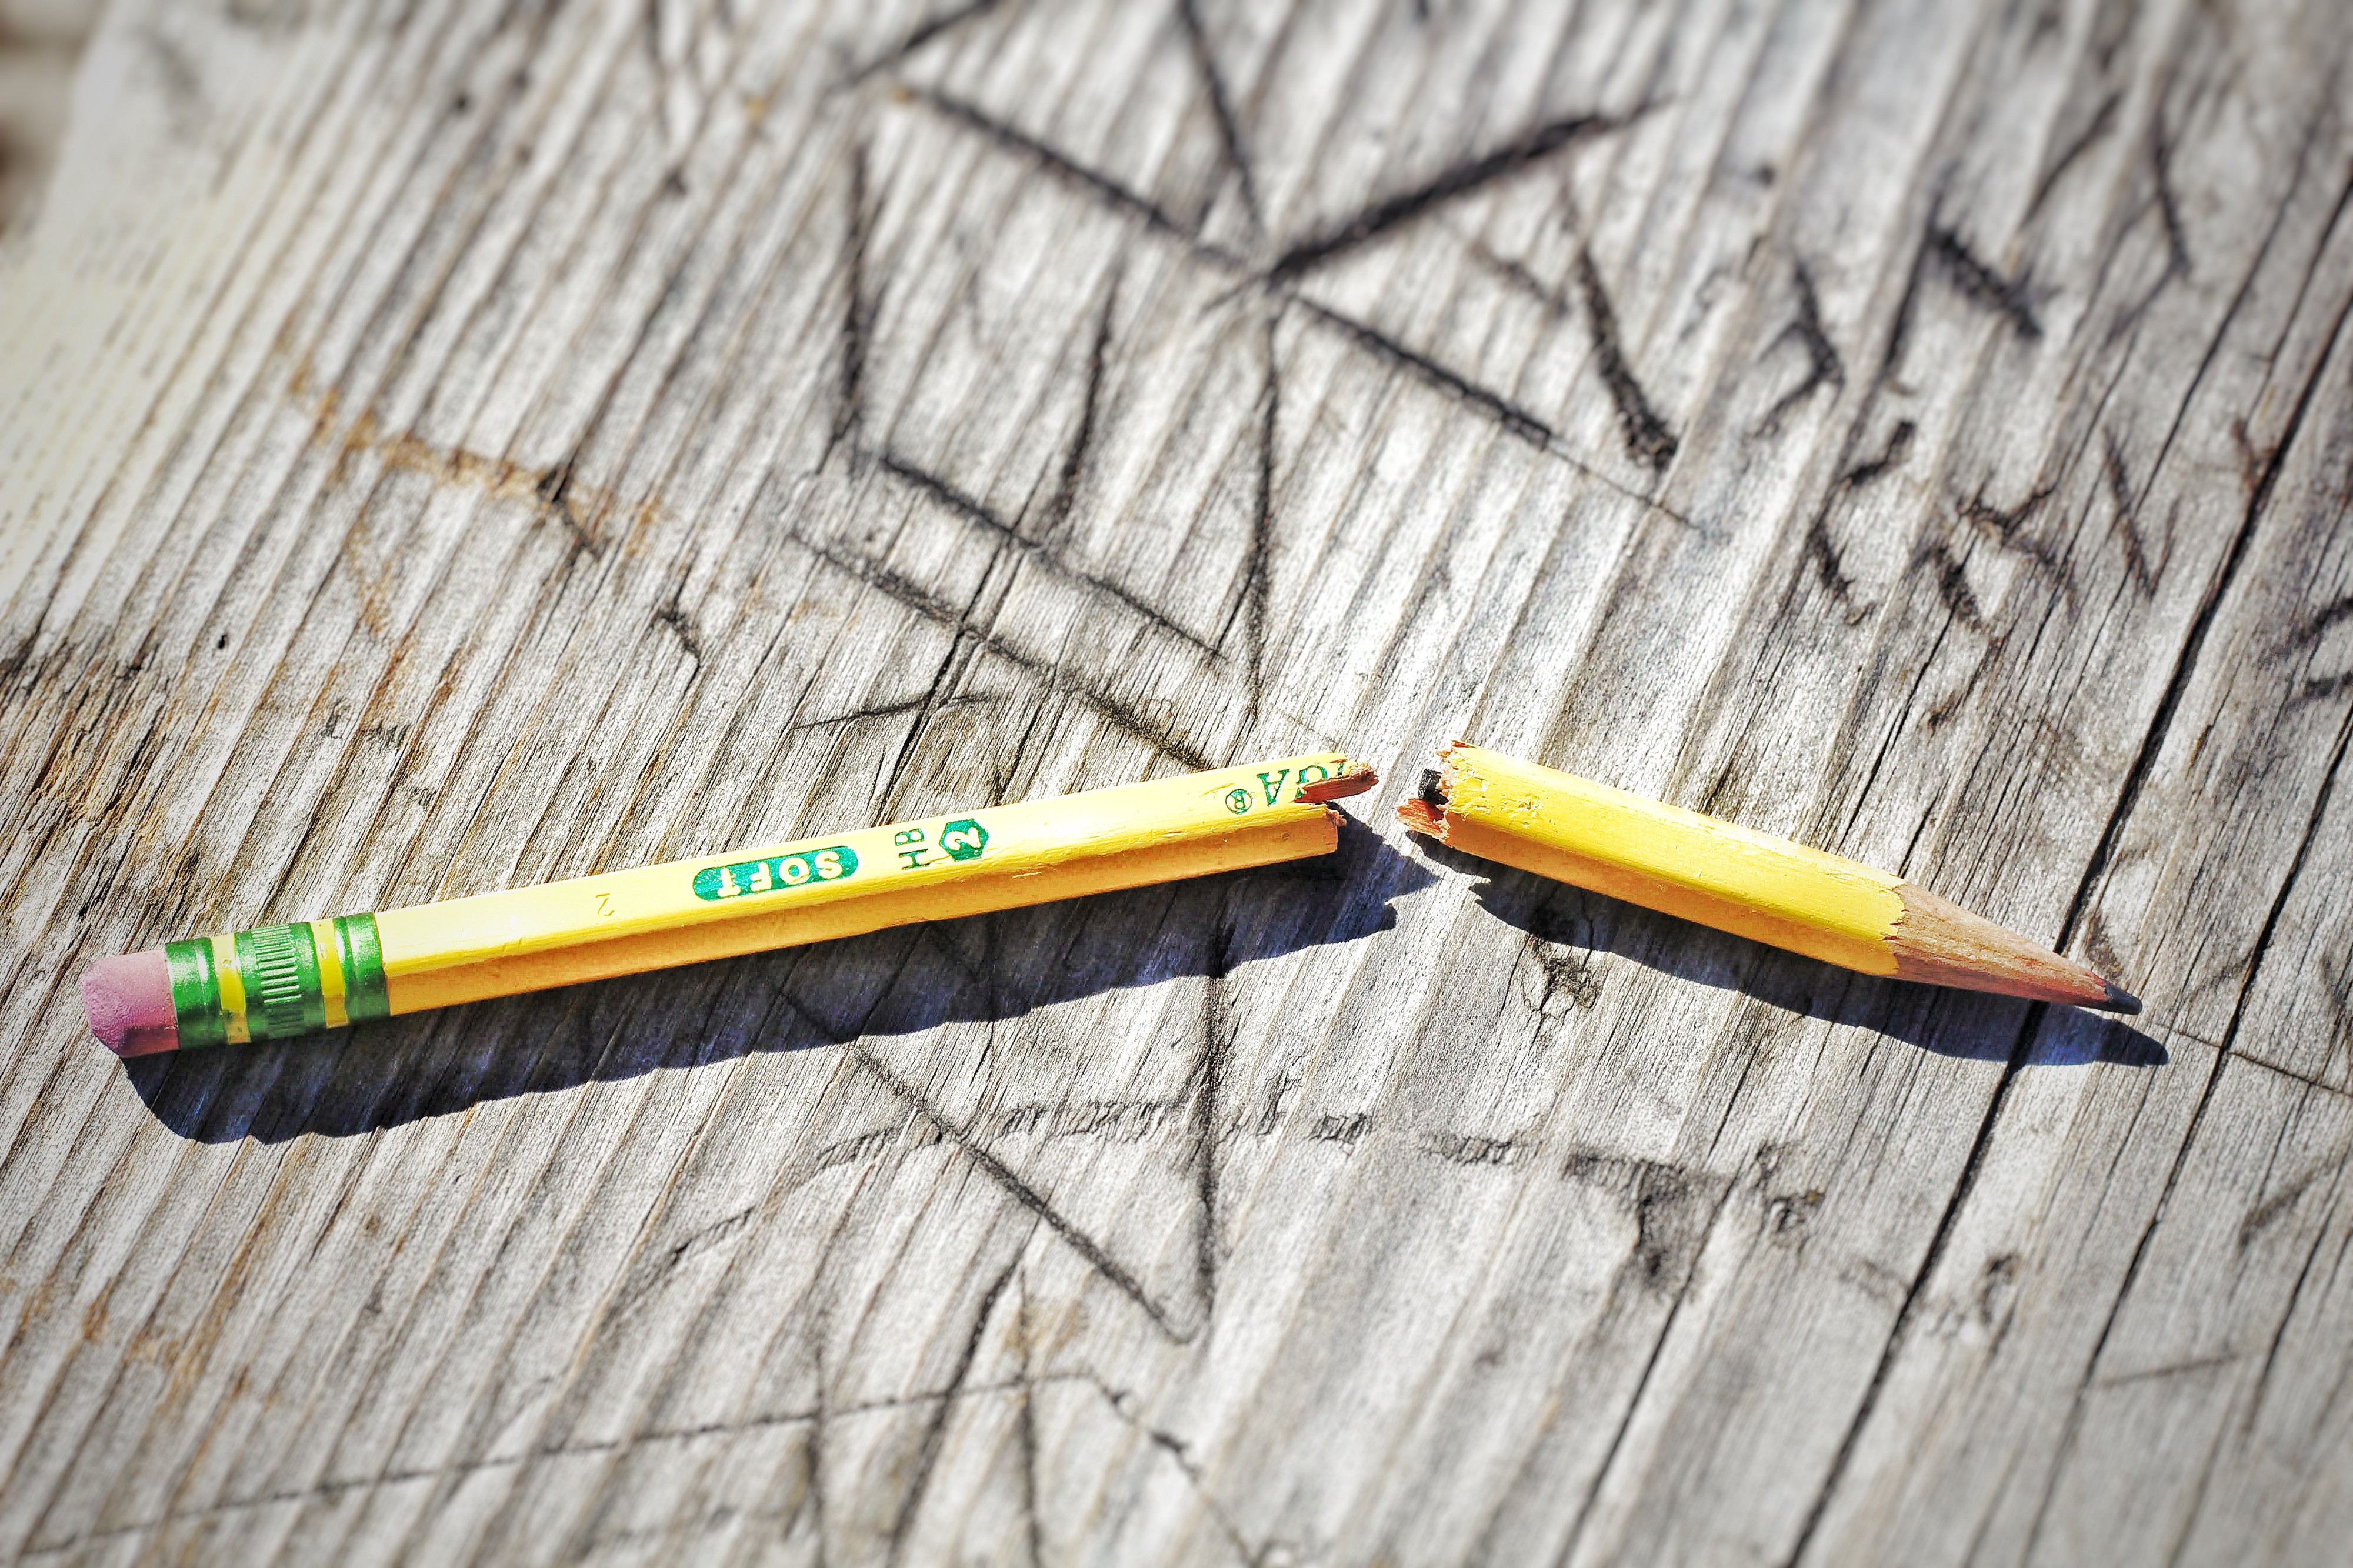 Close-up of a snapped pencil atop a worn picnic table vandalized by initials and the like.